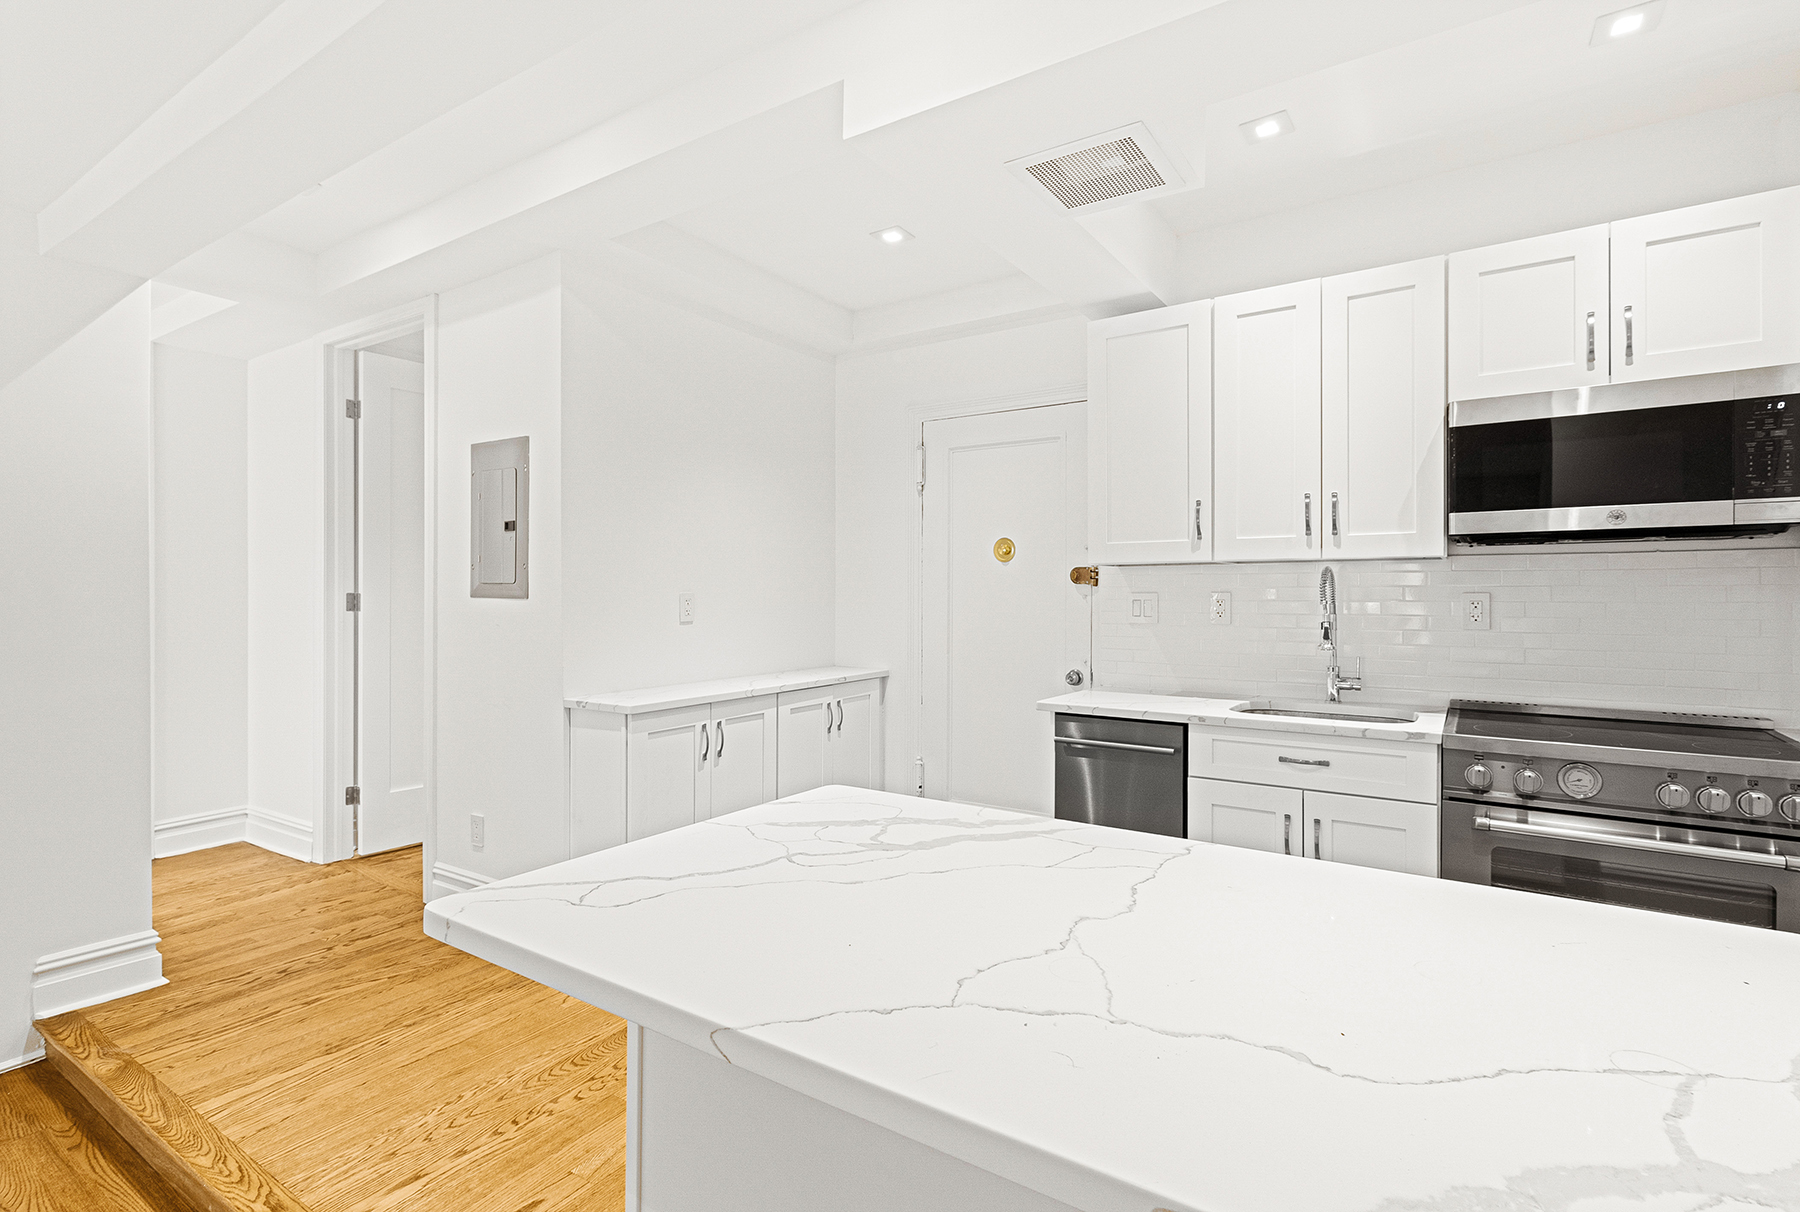 We have a RARE three bedroom/two bathroom SPONSOR UNIT in prime Prospect Heights! No Board Approval!  Welcome, welcome, welcome to 230 Park Place. Built in 1937, this co-op has a beautiful garden entrance that serves as a seamless transition from the tree-laden block. A 24/7 doorman awaits as you turn right down the lobby wing and make your way to the 2nd floor.  As you enter the residence, you are immediately greeted by a sparkling white kitchen. White Shaker cabinets and an ivory beveled subway tile backsplash complement the stainless steel Bertazzoni appliances. The grey streaks in the gorgeous Calacatta Marble outline the piercing white surface which perfectly tie together the duo of colors this huge kitchen space emanates.  The always tasteful step down into the recessed living and dining area changes the feel of the space, but still provides fluidity for entertainment purposes. The area can easily accommodate formal dining if desired.  All three bedrooms are separated to their own wing of the apartment which serves as an internal cue that it is time to rest. The tertiary bedroom has a built-in closet with an eastern exposure. The secondary is larger with has a standing closet unit and two exposures facing east and south. Both rooms are right across the hall from the shared full bathroom.  The Primary Suite is just plain large. The bedroom has an eastern and northern exposure and is buried in the corner of the apartment for privacy. The room has a his and her closet pairing that is adjacent to the entrance of the en suite bathroom.   Both of the residence's bathrooms sport an extremely polished finish. Gorgeous pre-war flooring, excellent tile work, built-in medicine cabinets and an overhead rainfall shower. The only tangible differences are the tile finishes. The shared bathroom is laden with white beveled subway tile and the en suite is adorned in Carrara Marble.  230 Park Place is pet friendly, has storage (waitlisted), bike storage, a live-in super and a ma